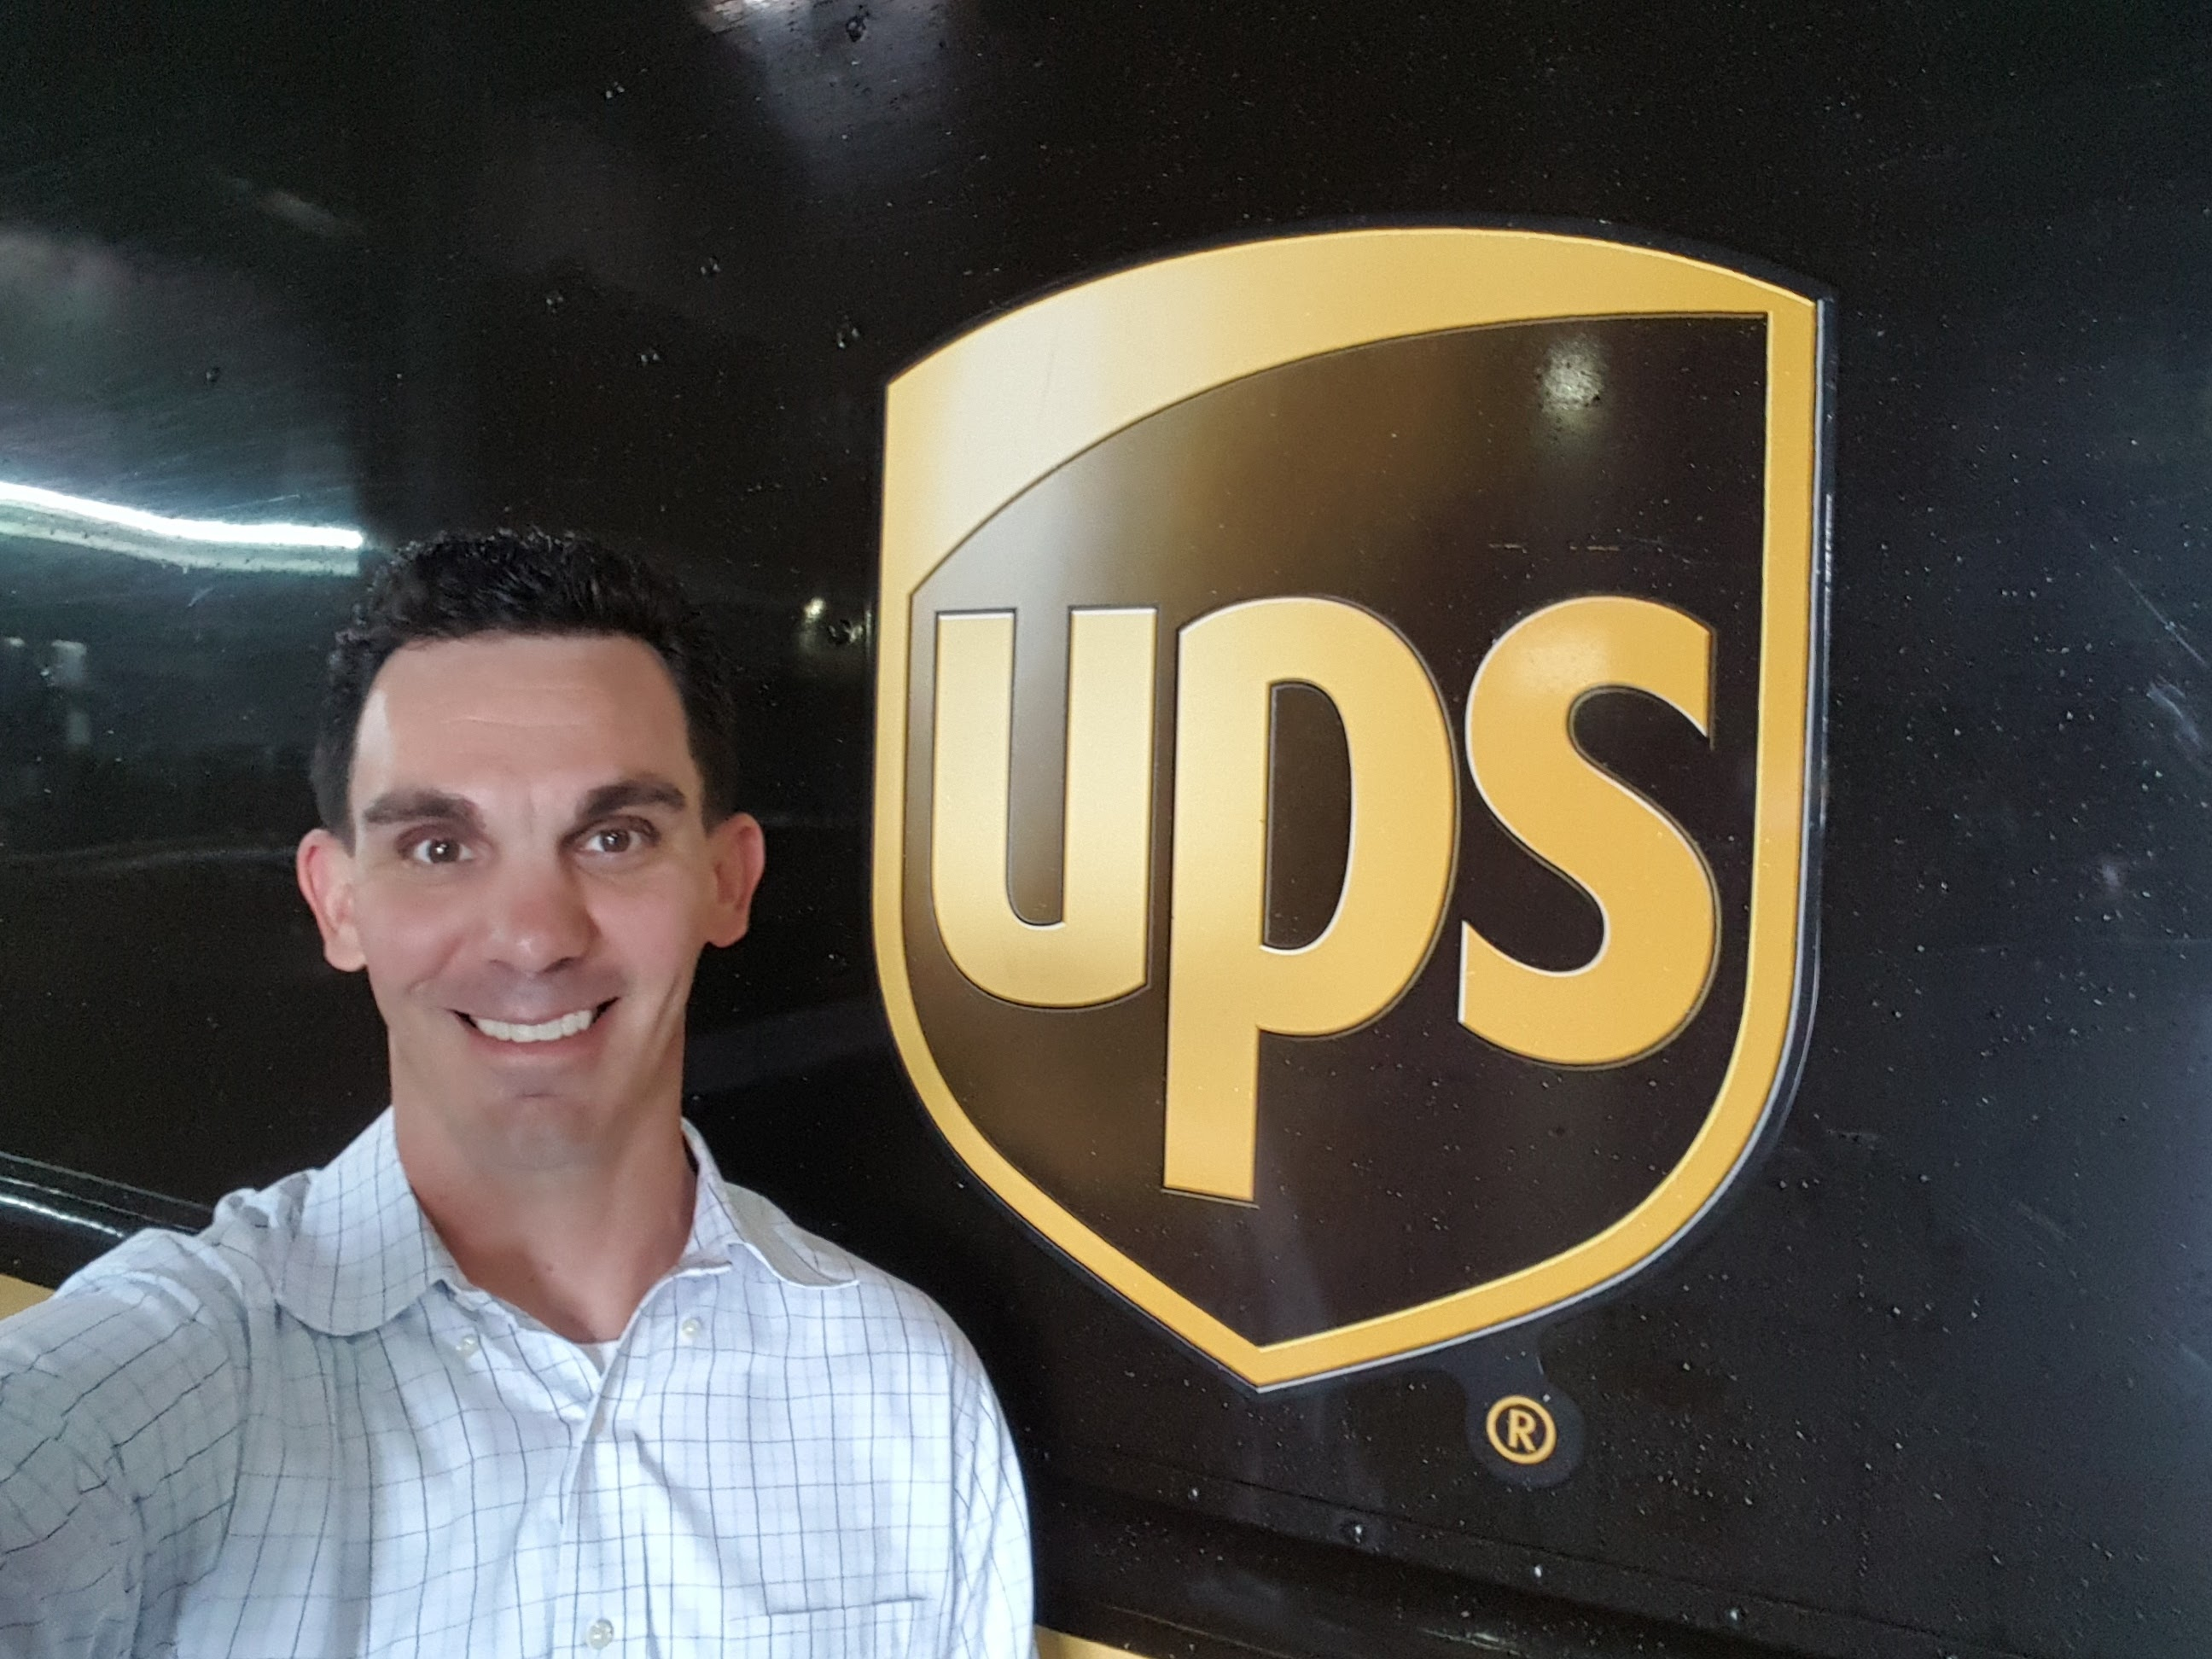 The Corporate Fellowship Program eased my fear of not finding a job after leaving the Marines, said John Morrison, corporate fellow at UPS.